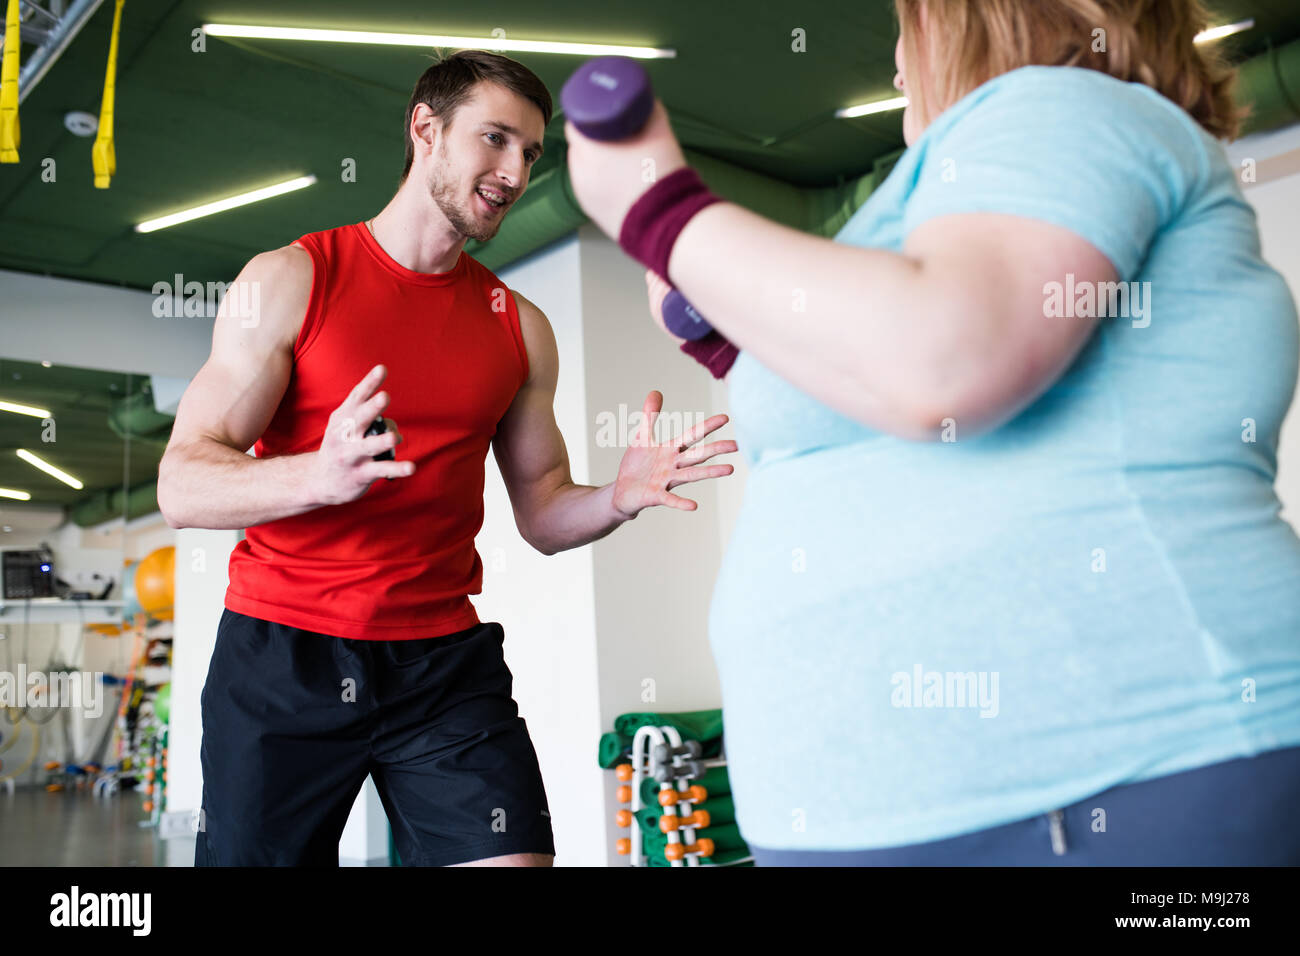 Personal Trainer Working with Client - Stock Image